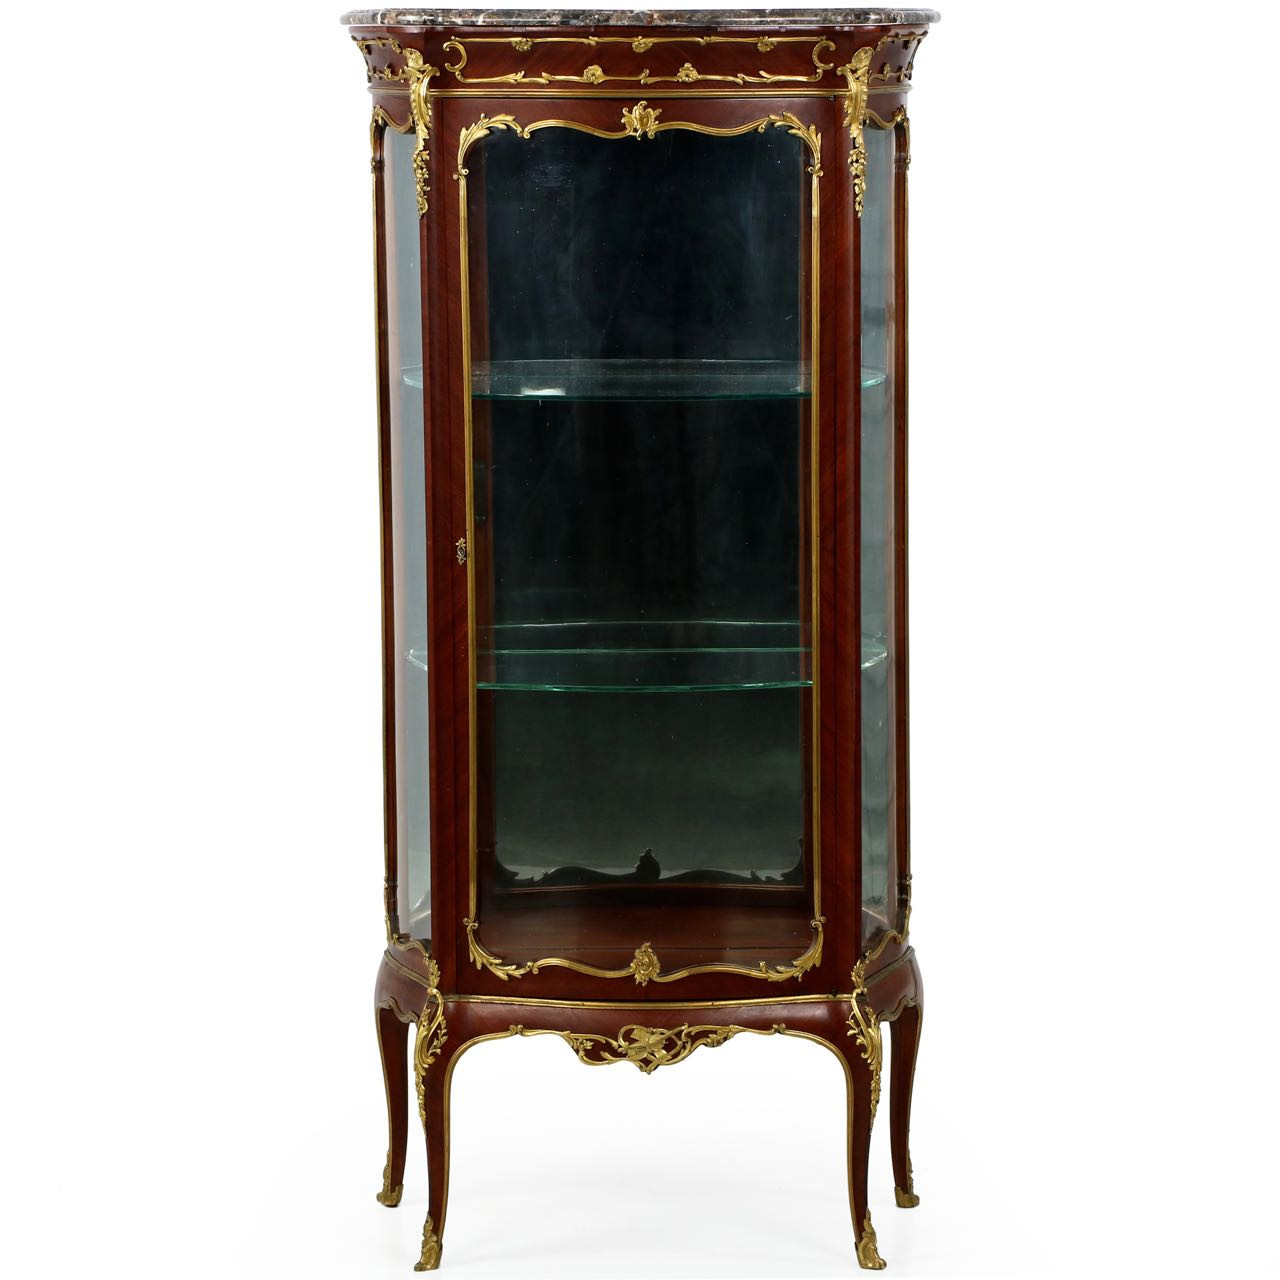 Exquisite French Louis XV Ormolu Mounted Kingwood Vitrine Cabinet - Exquisite French Louis XV Style Vitrine Display Cabinet C. 1880